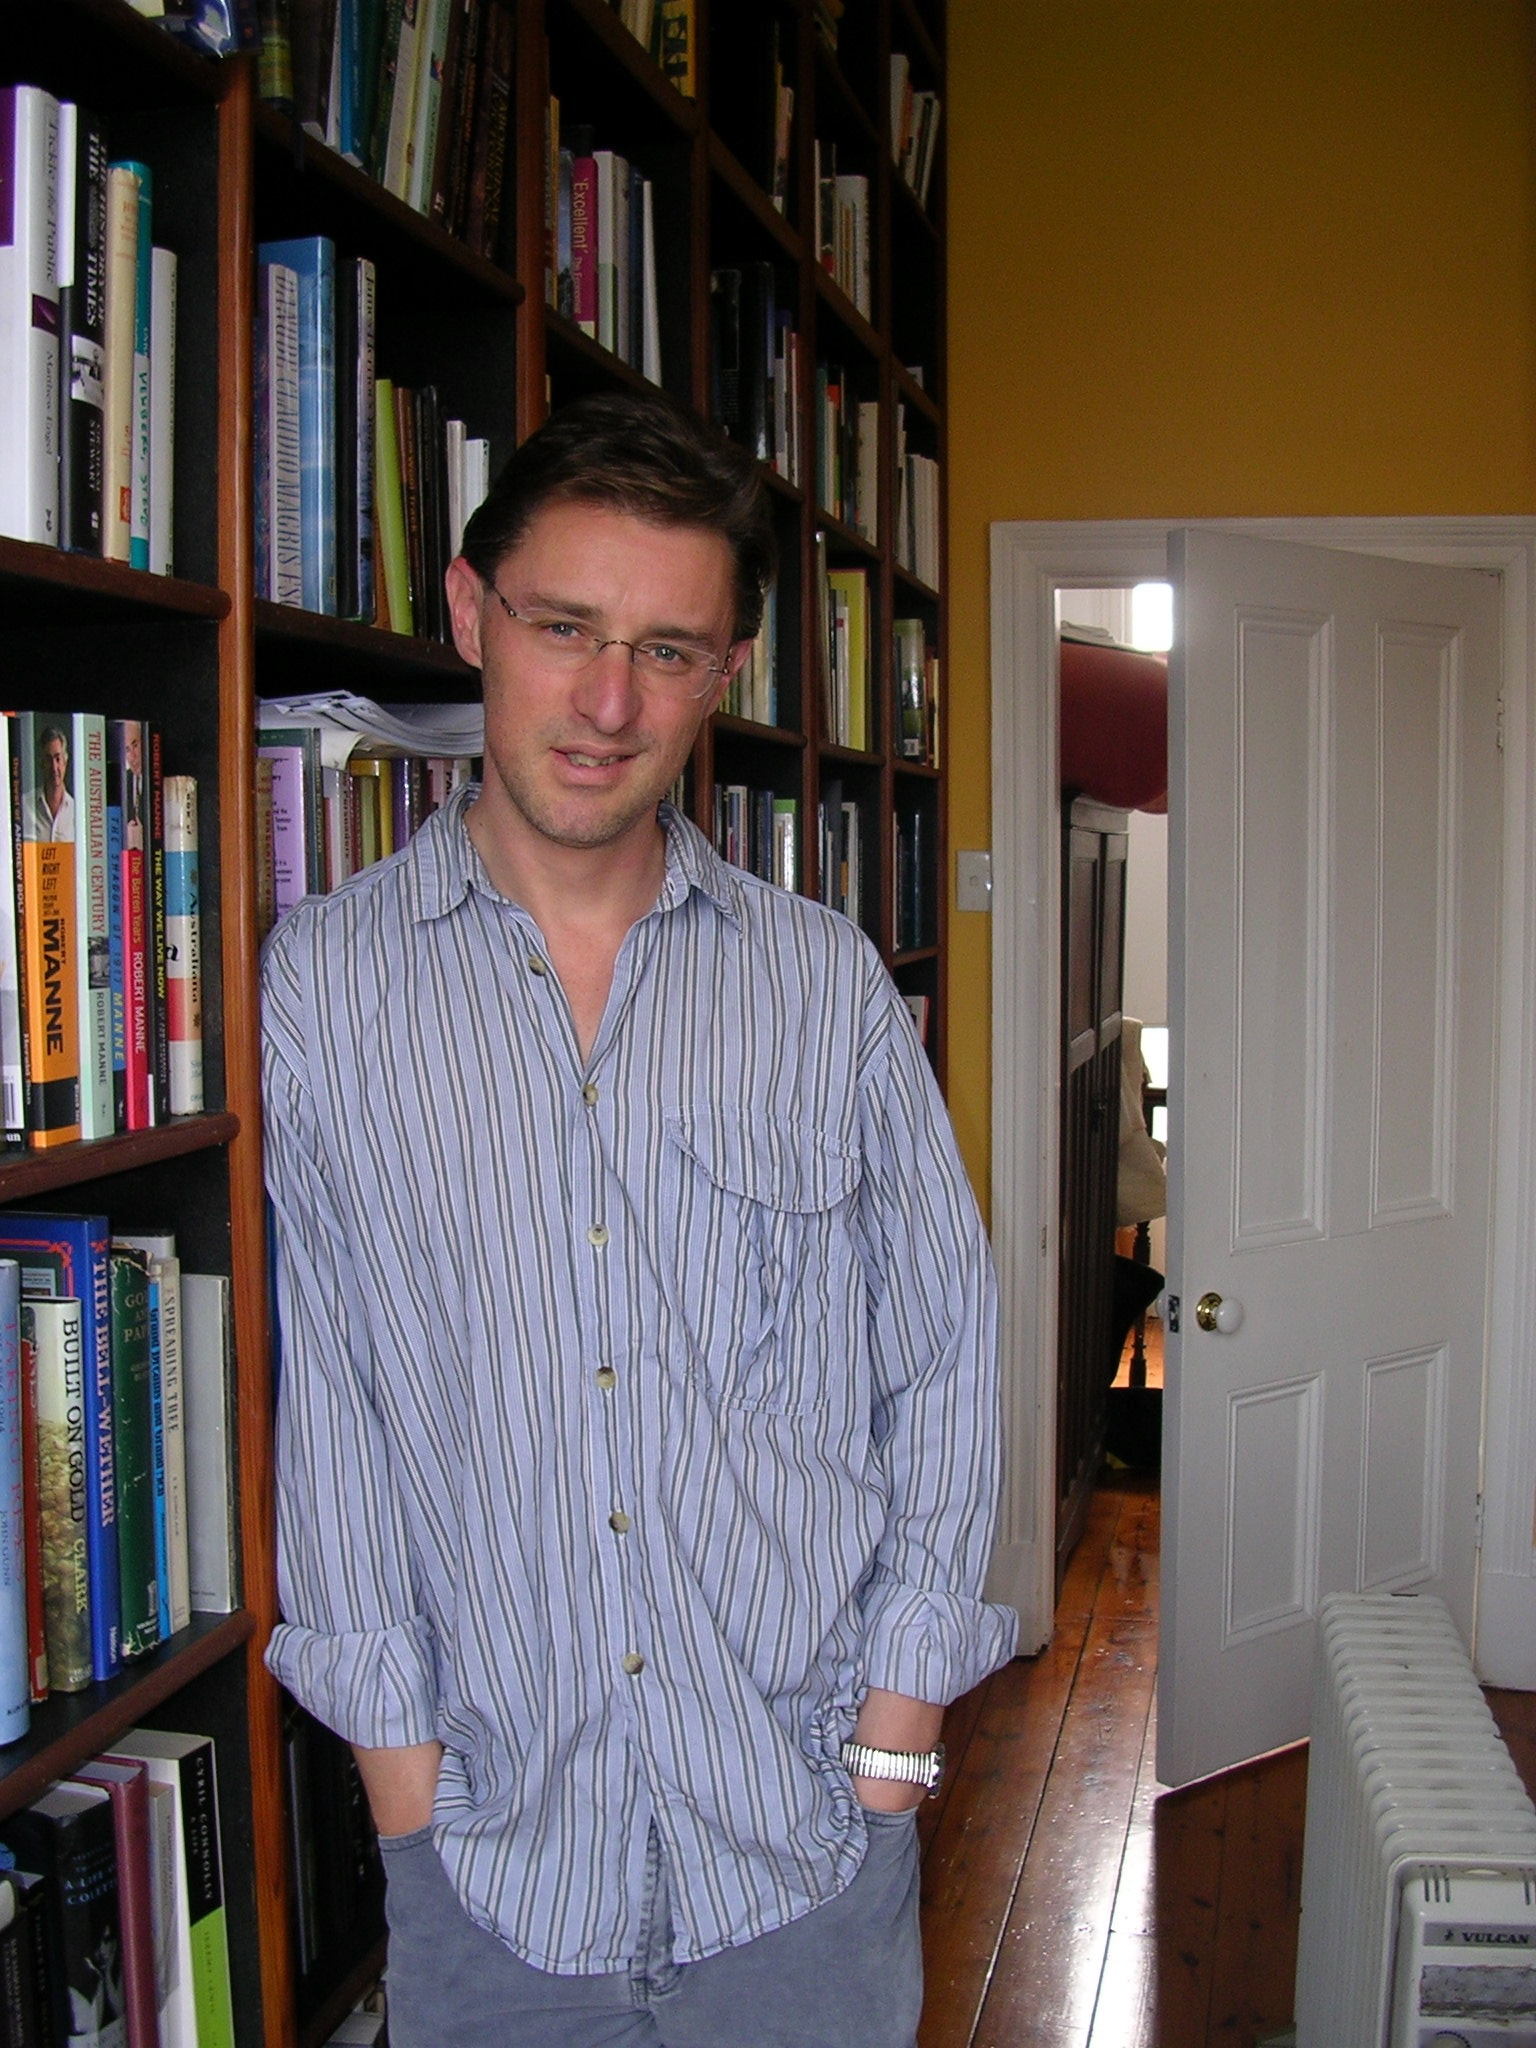 Author Gideon Haigh